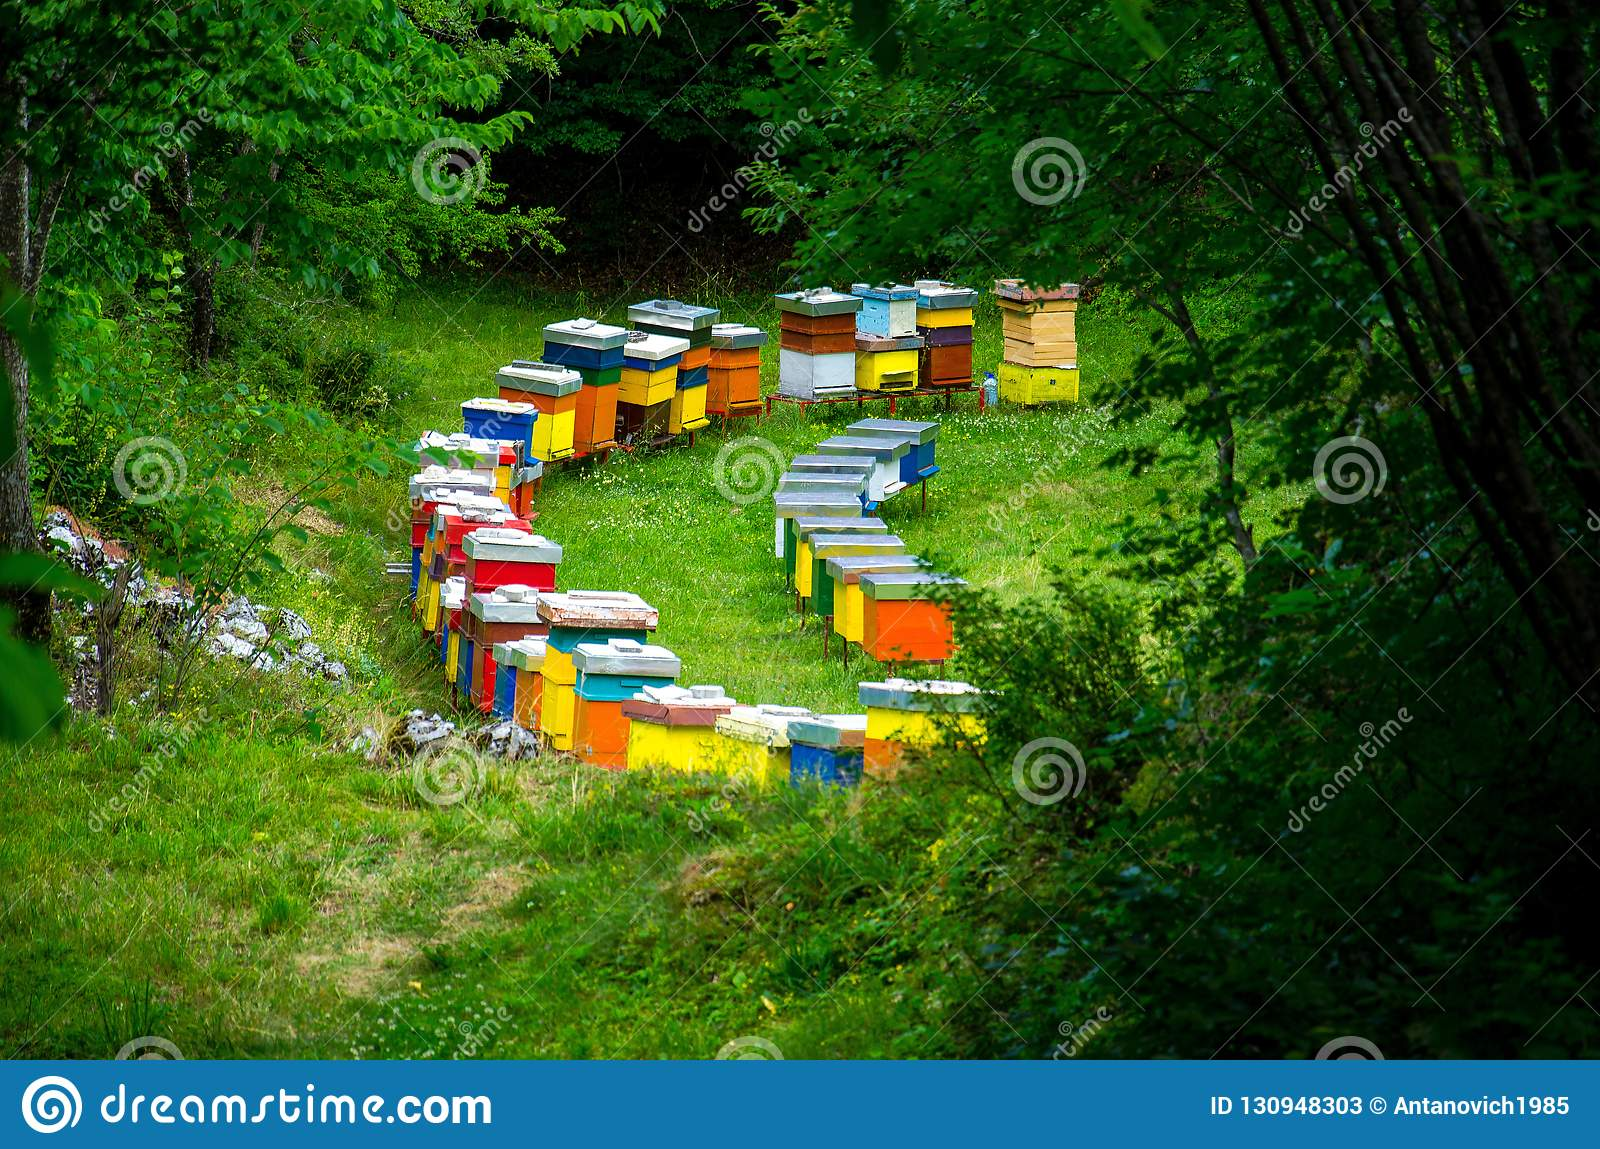 Rows of colourful wooden bee hives in forest meadow clearing